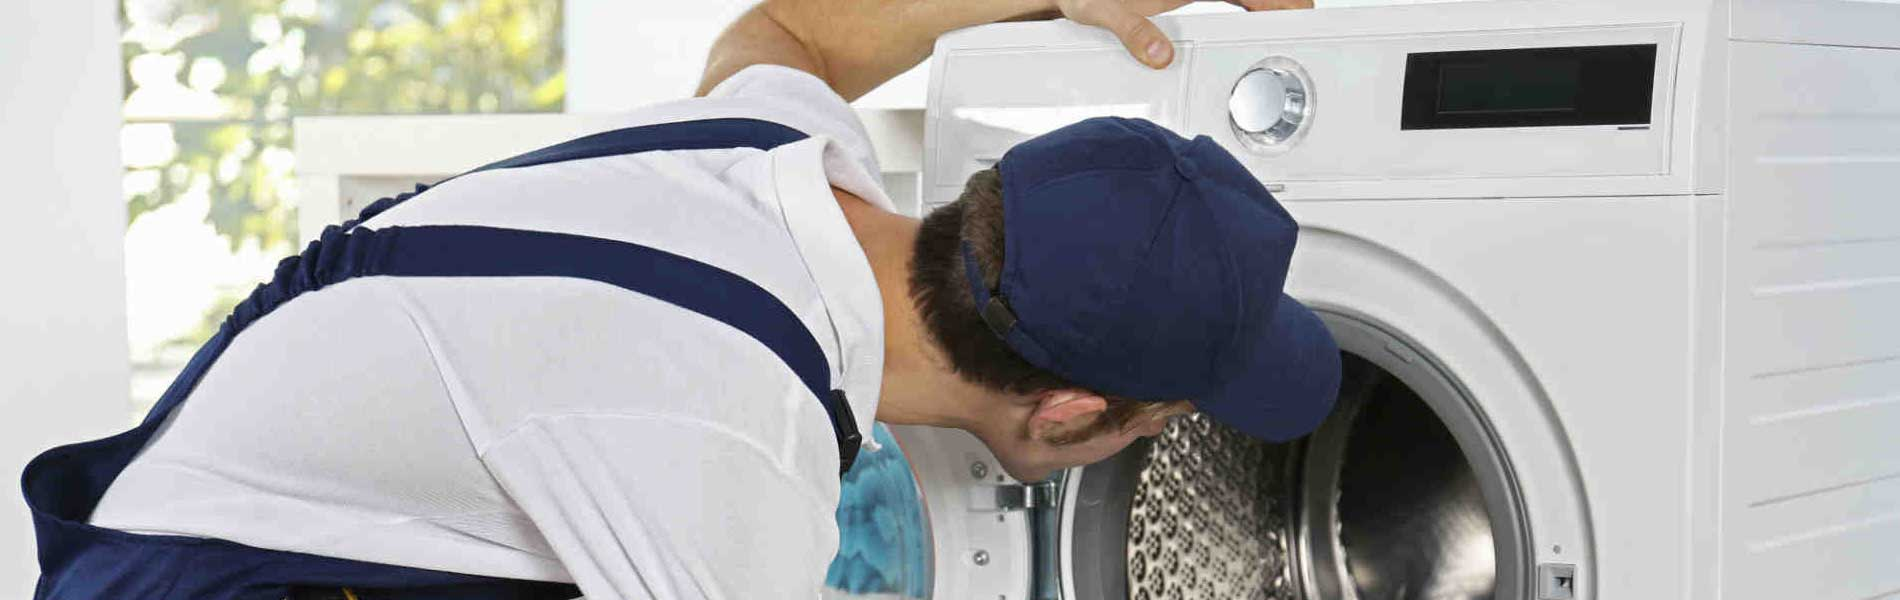 Godrej Washing Machine Mechanic in Parrys Corner